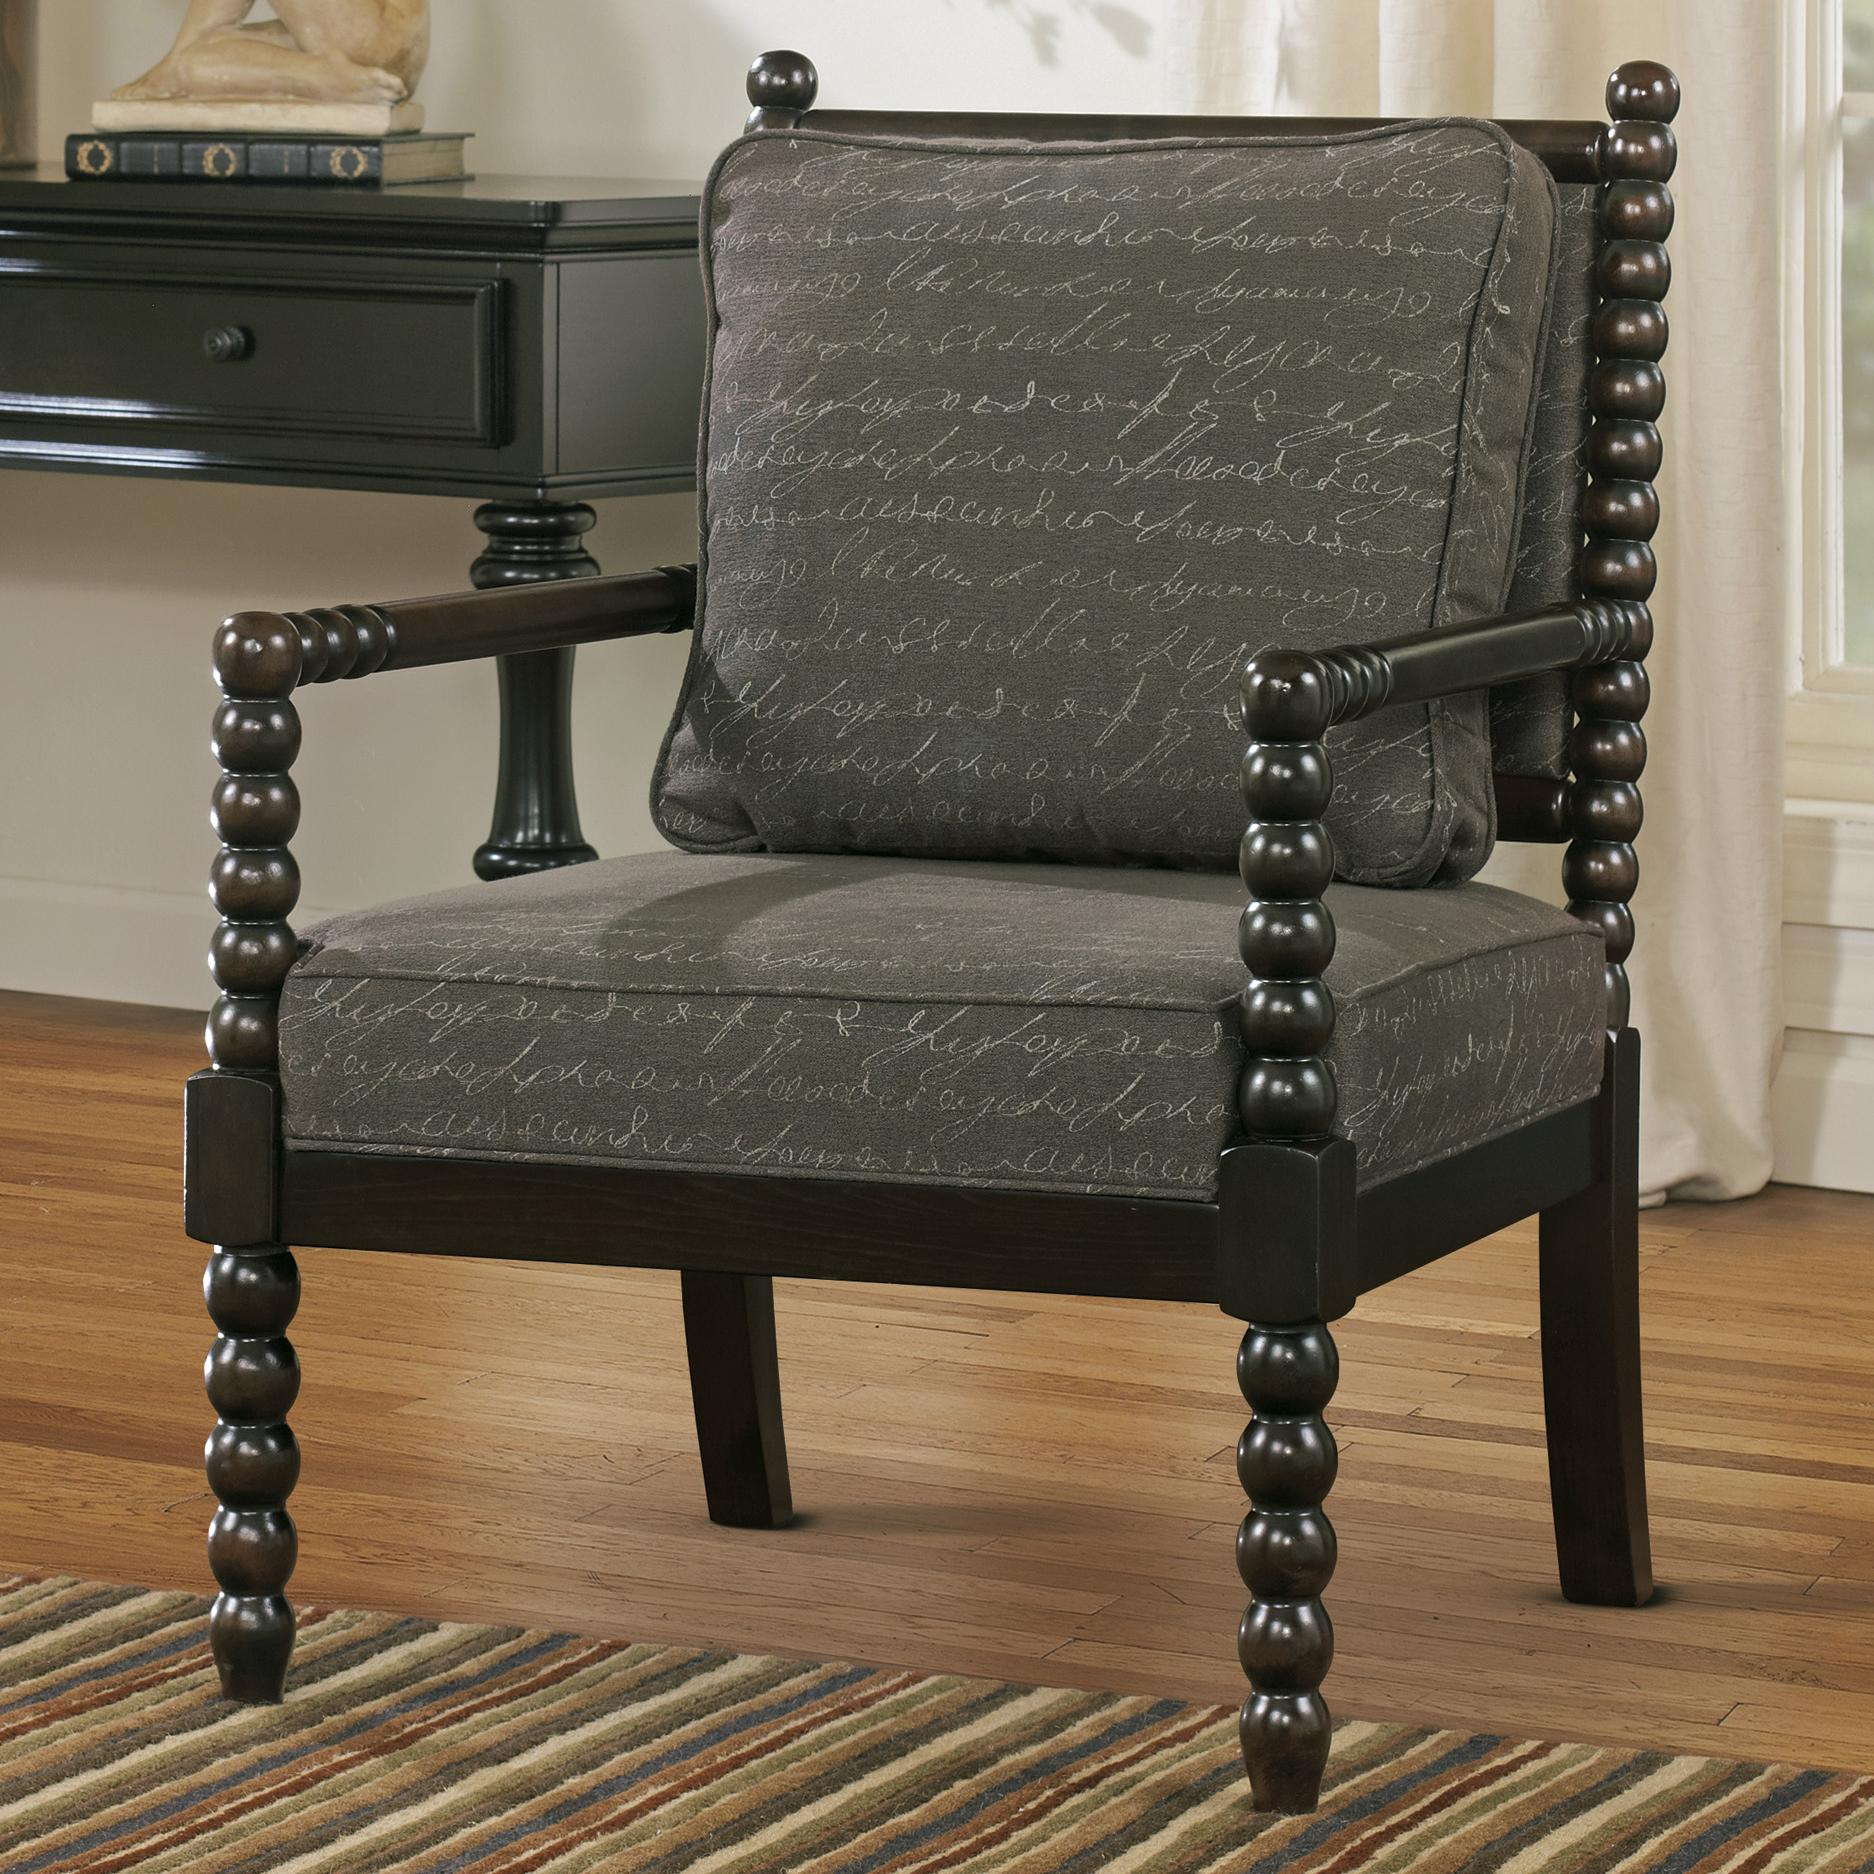 Signature Design by Ashley Milari Accent Chair - Item Number: 1300060